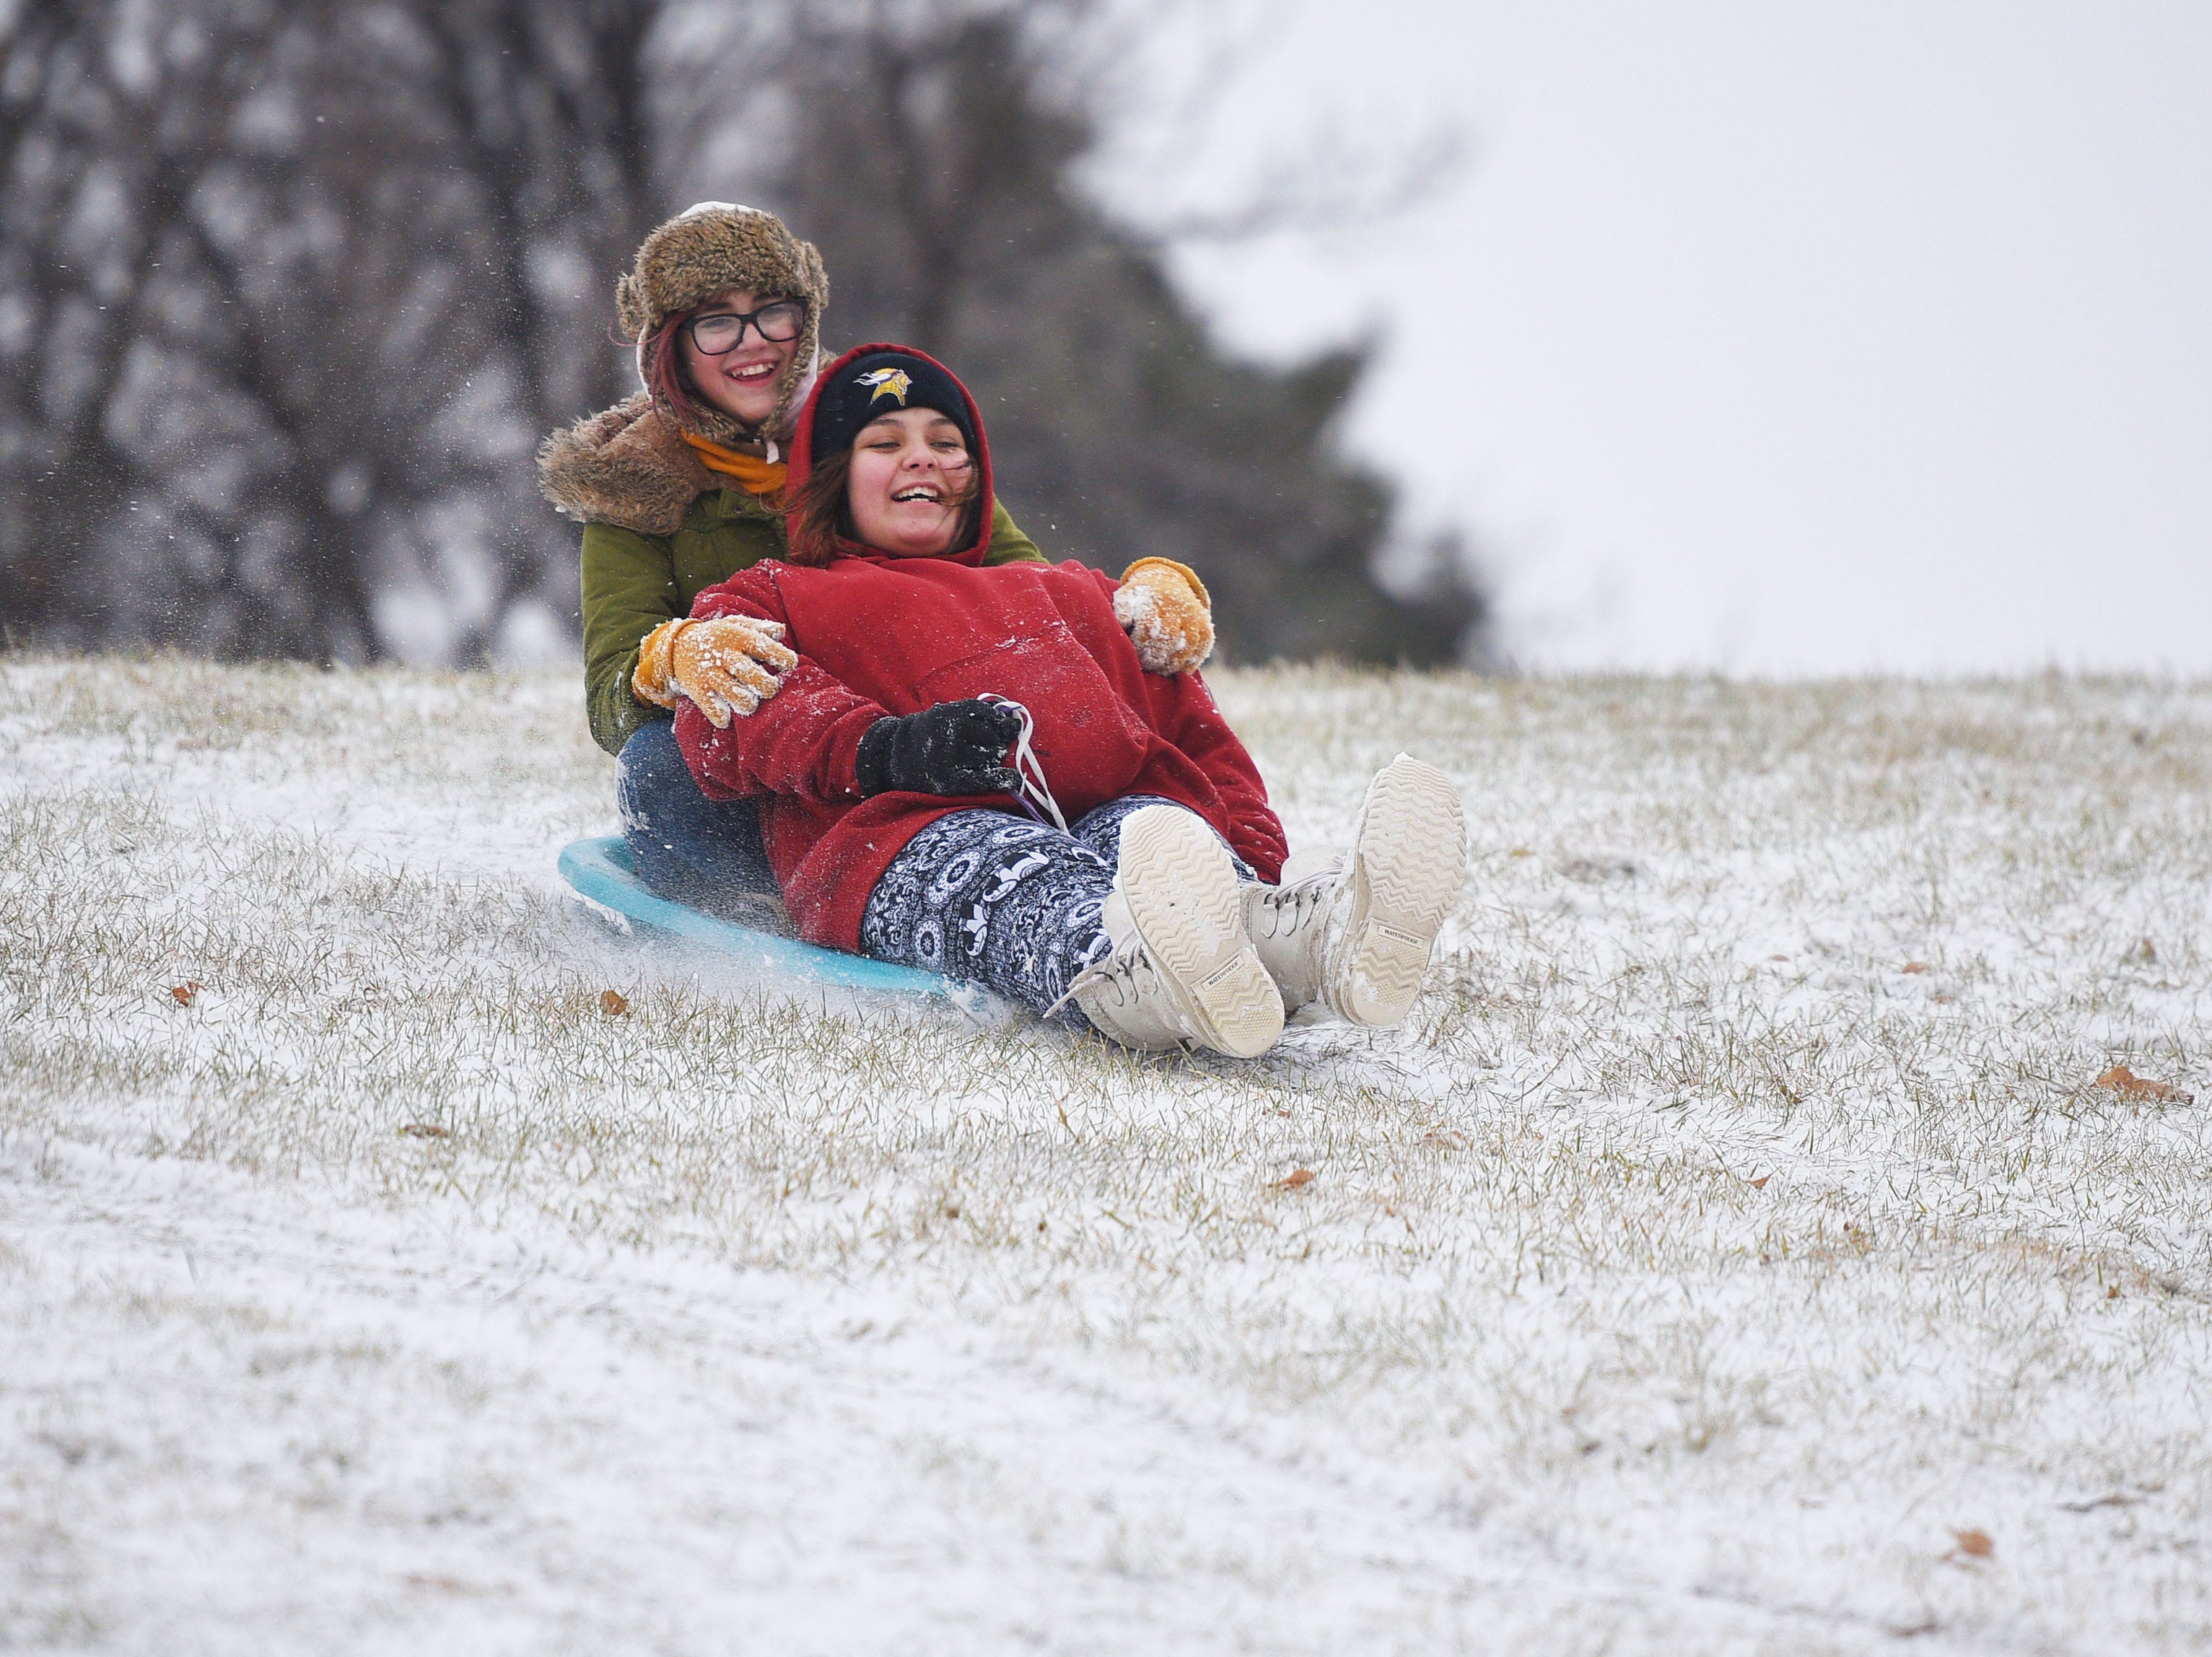 Santina Buckles and Brittaney Schultz sled down the hill near the Midco Aquatic Center Saturday, Dec. 1, in Sioux Falls.